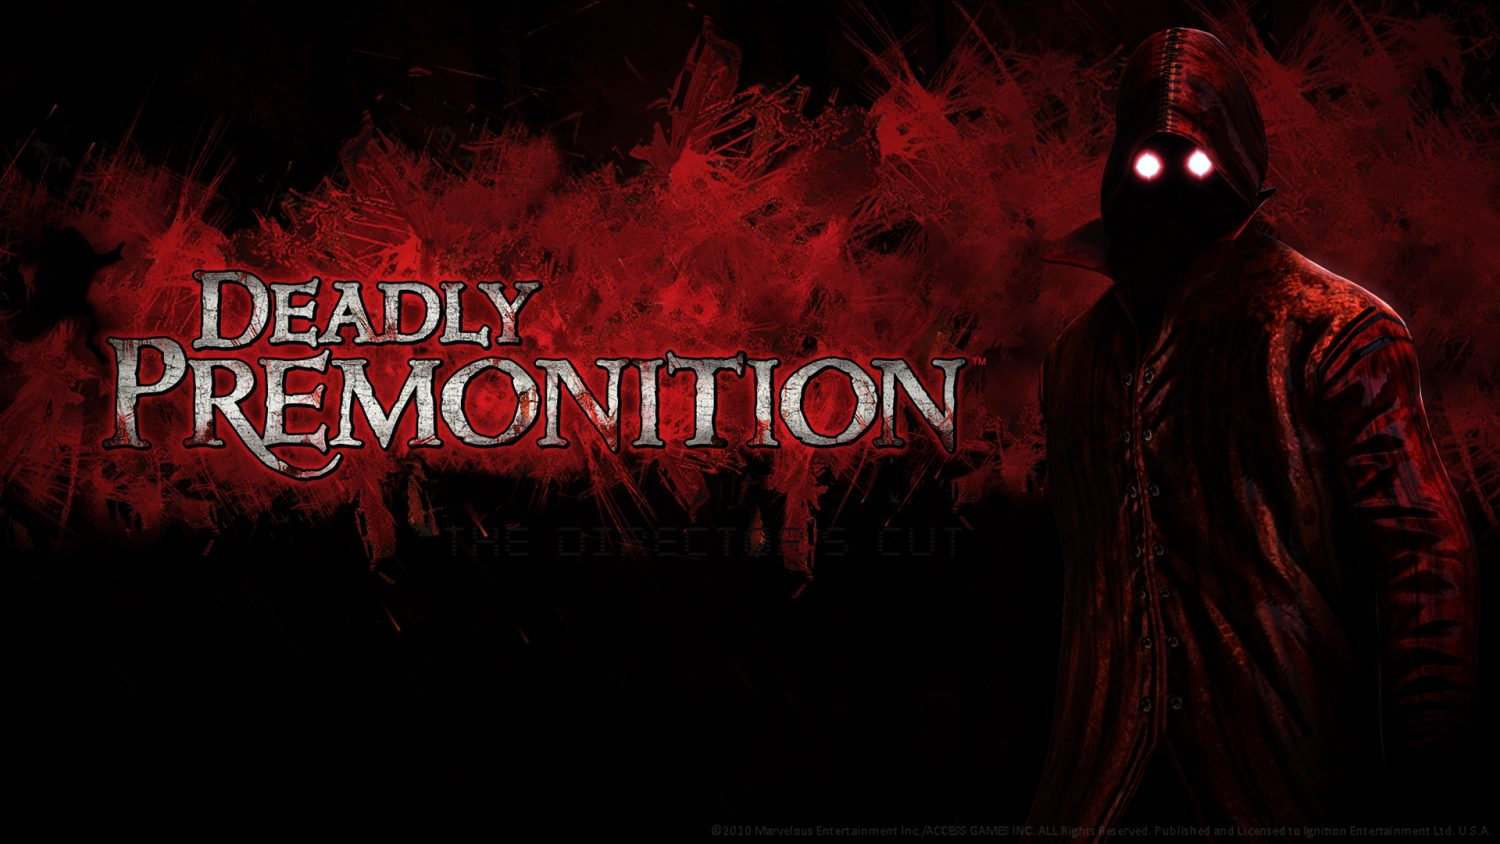 BlurryPhoenix Reflects: Deadly Premonition